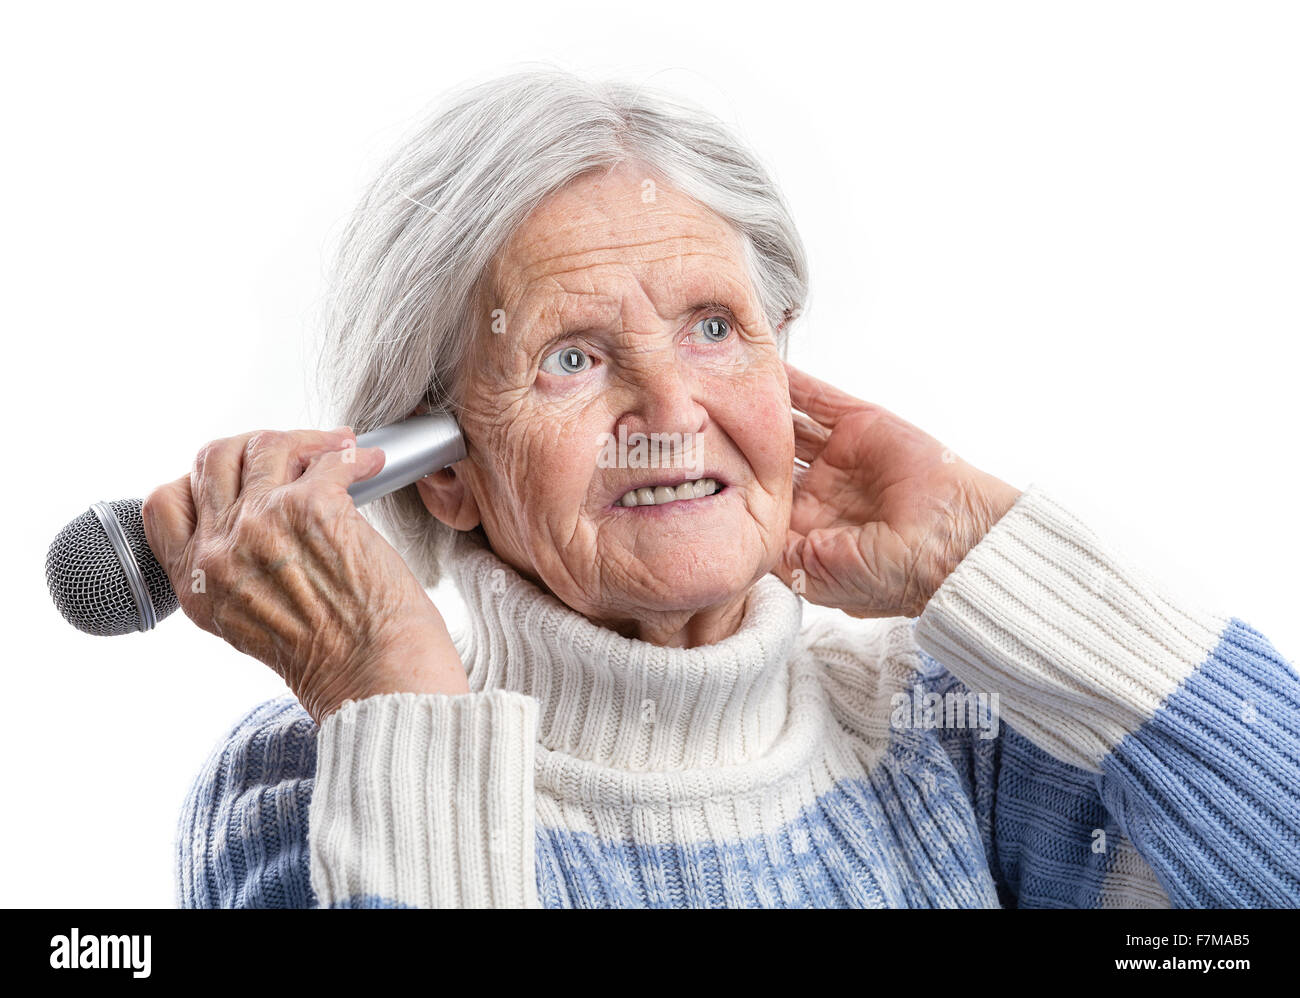 Elderly woman holding microphone close to an ear hearing problems elderly woman holding microphone close to an ear hearing problems publicscrutiny Choice Image